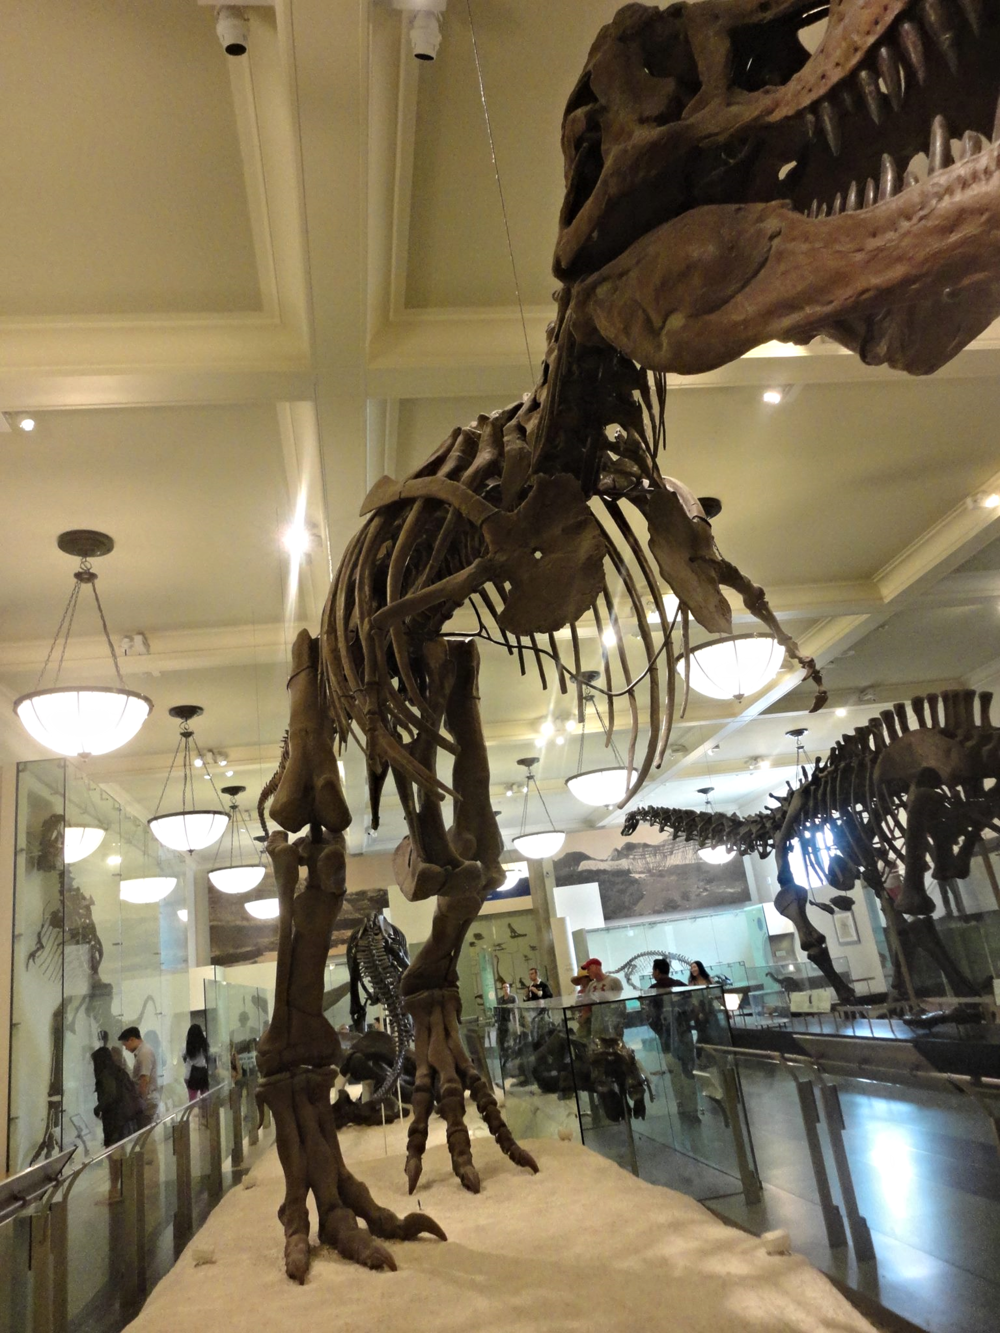 Taking in the dinosaur exhibits at the American Museum of Natural History.